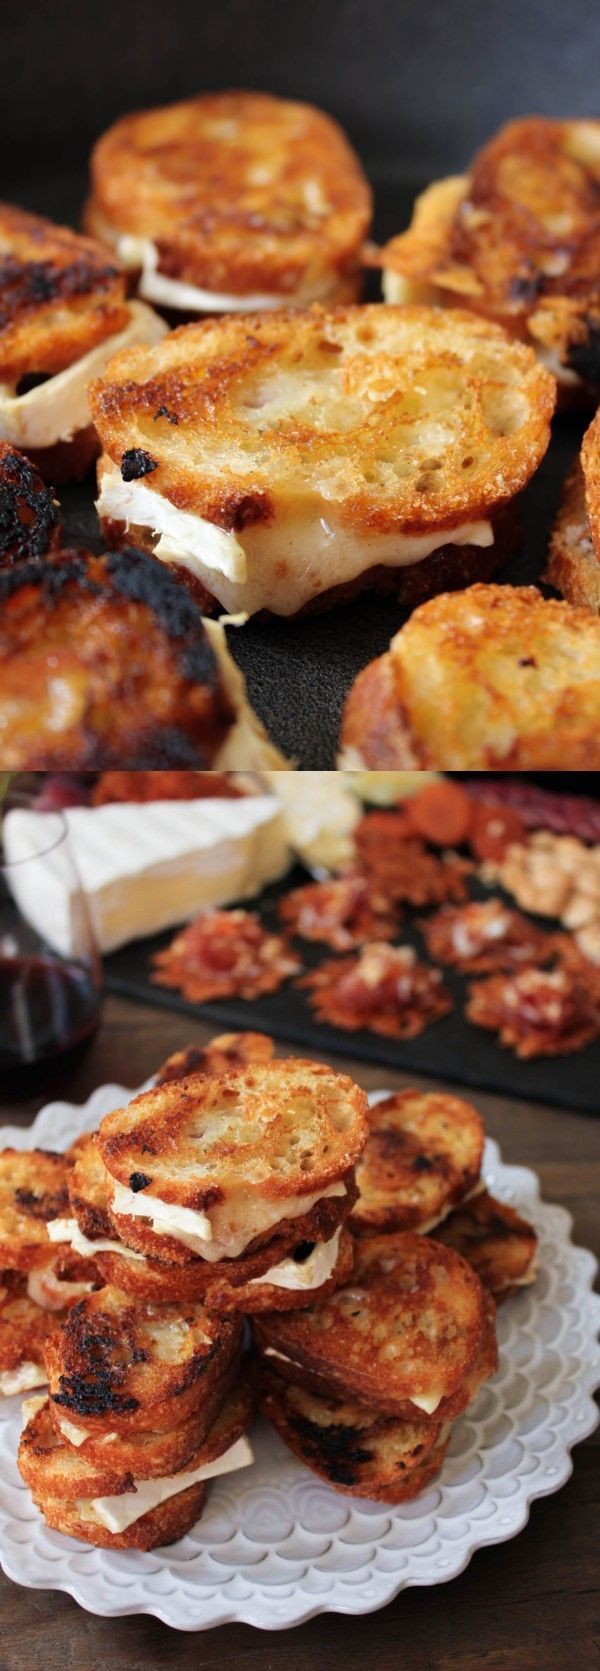 Brie and Candied Bacon Grilled Cheese Bites